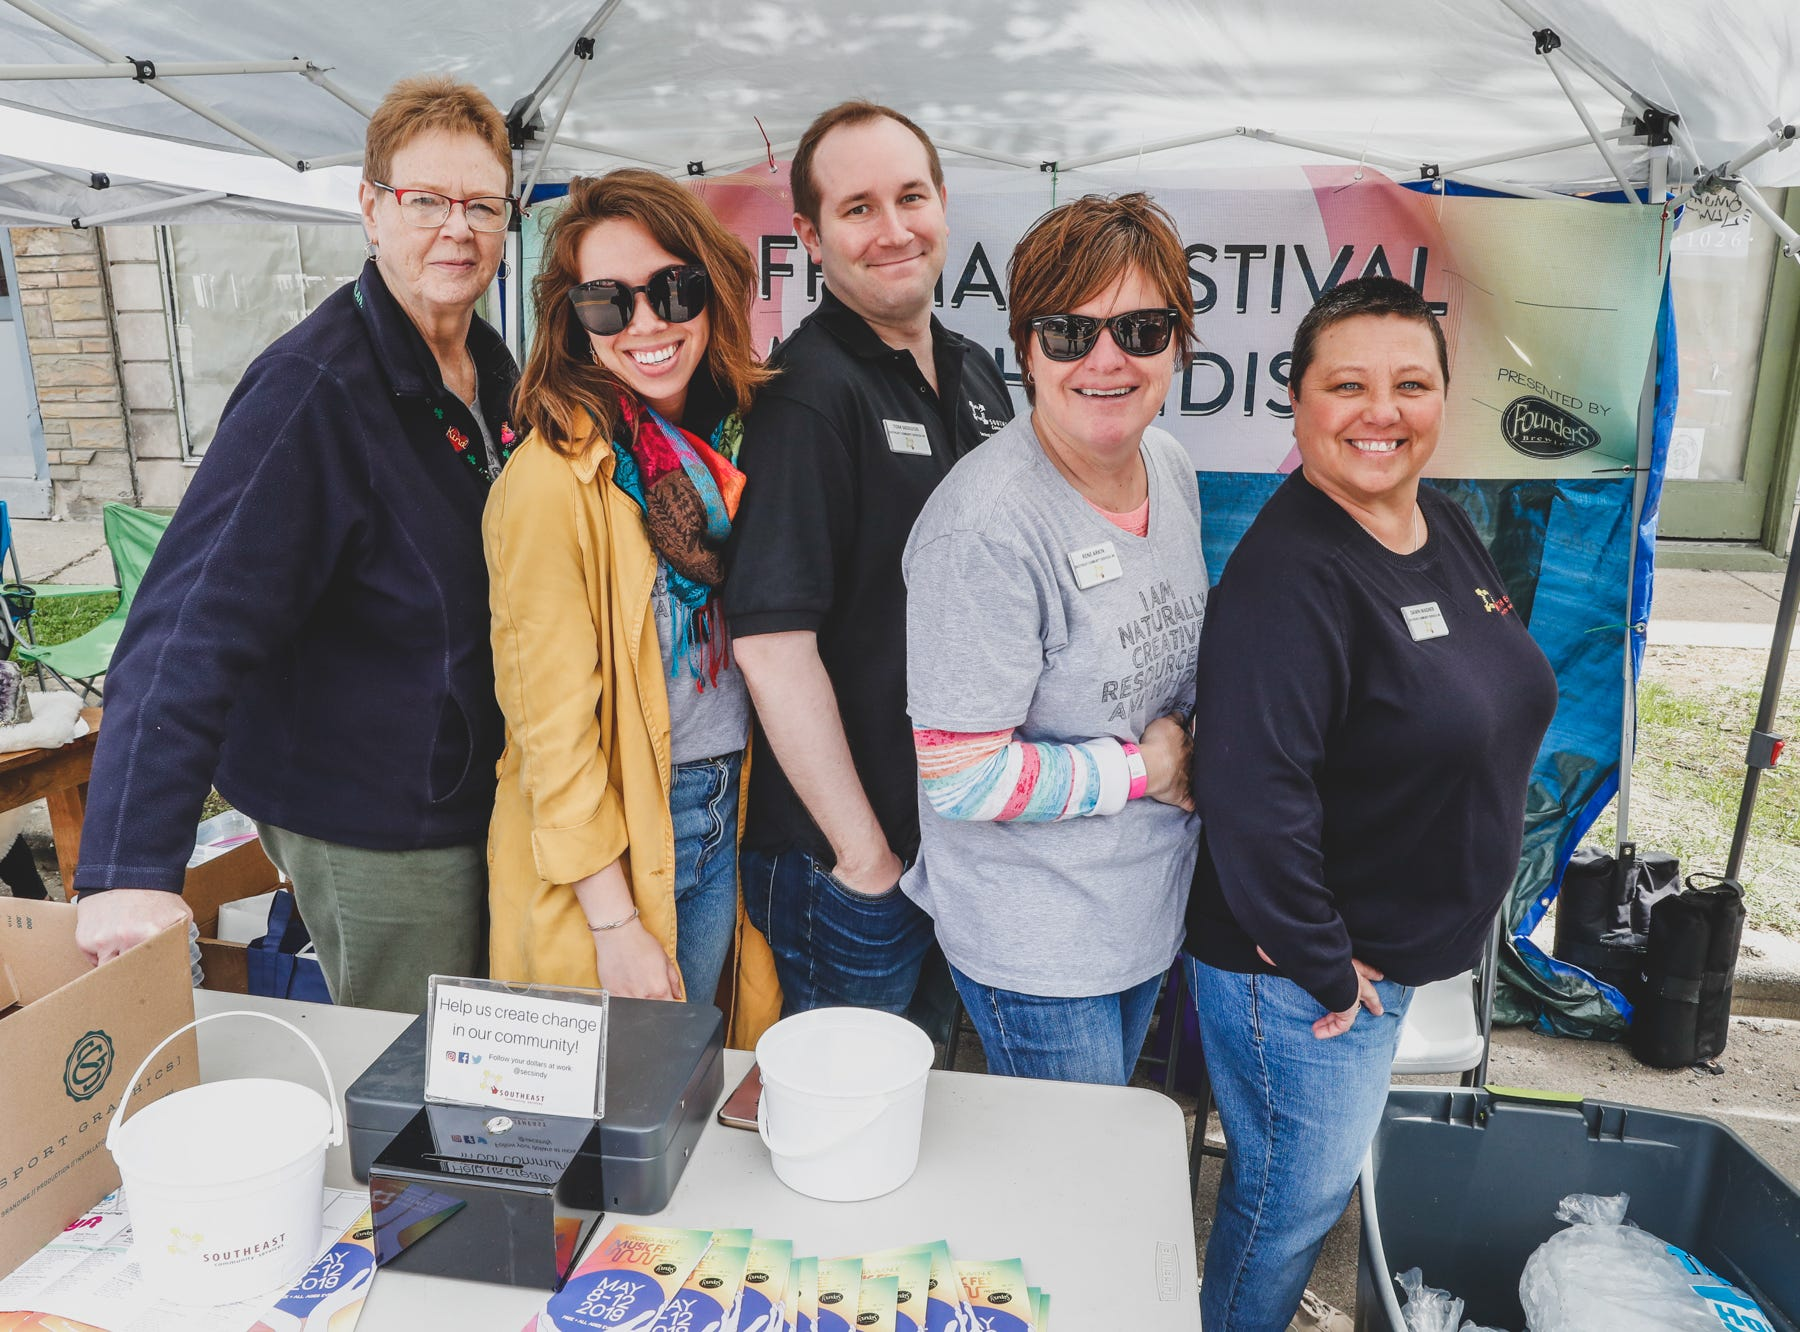 Representatives from Southeast Community Services, Inc. pose for a photo during the Virginia Avenue Music Fest, held in Fountain Square, located in Indianapolis, on Saturday, May 11, 2019. Funds raised by this years VAMF support the Southeast Community Services, Inc.